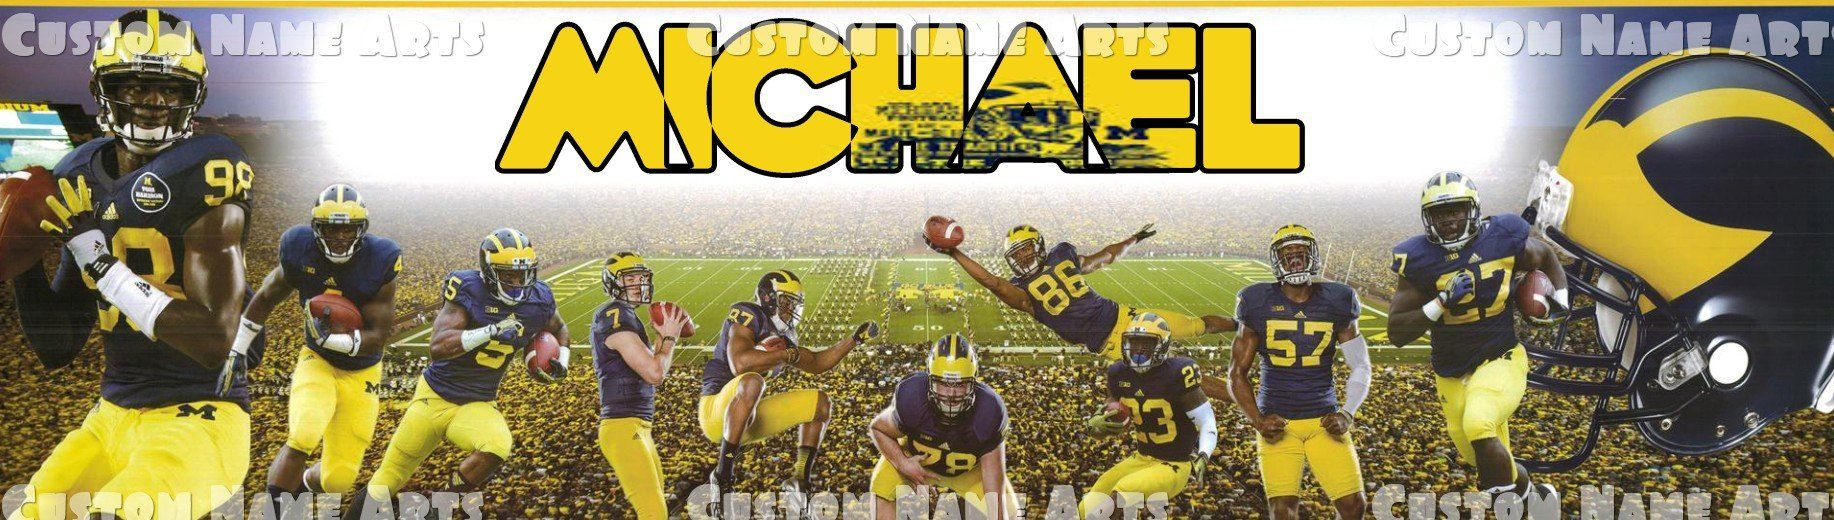 Personalized Michigan Wolverines Football Banner Birthday Poster ...